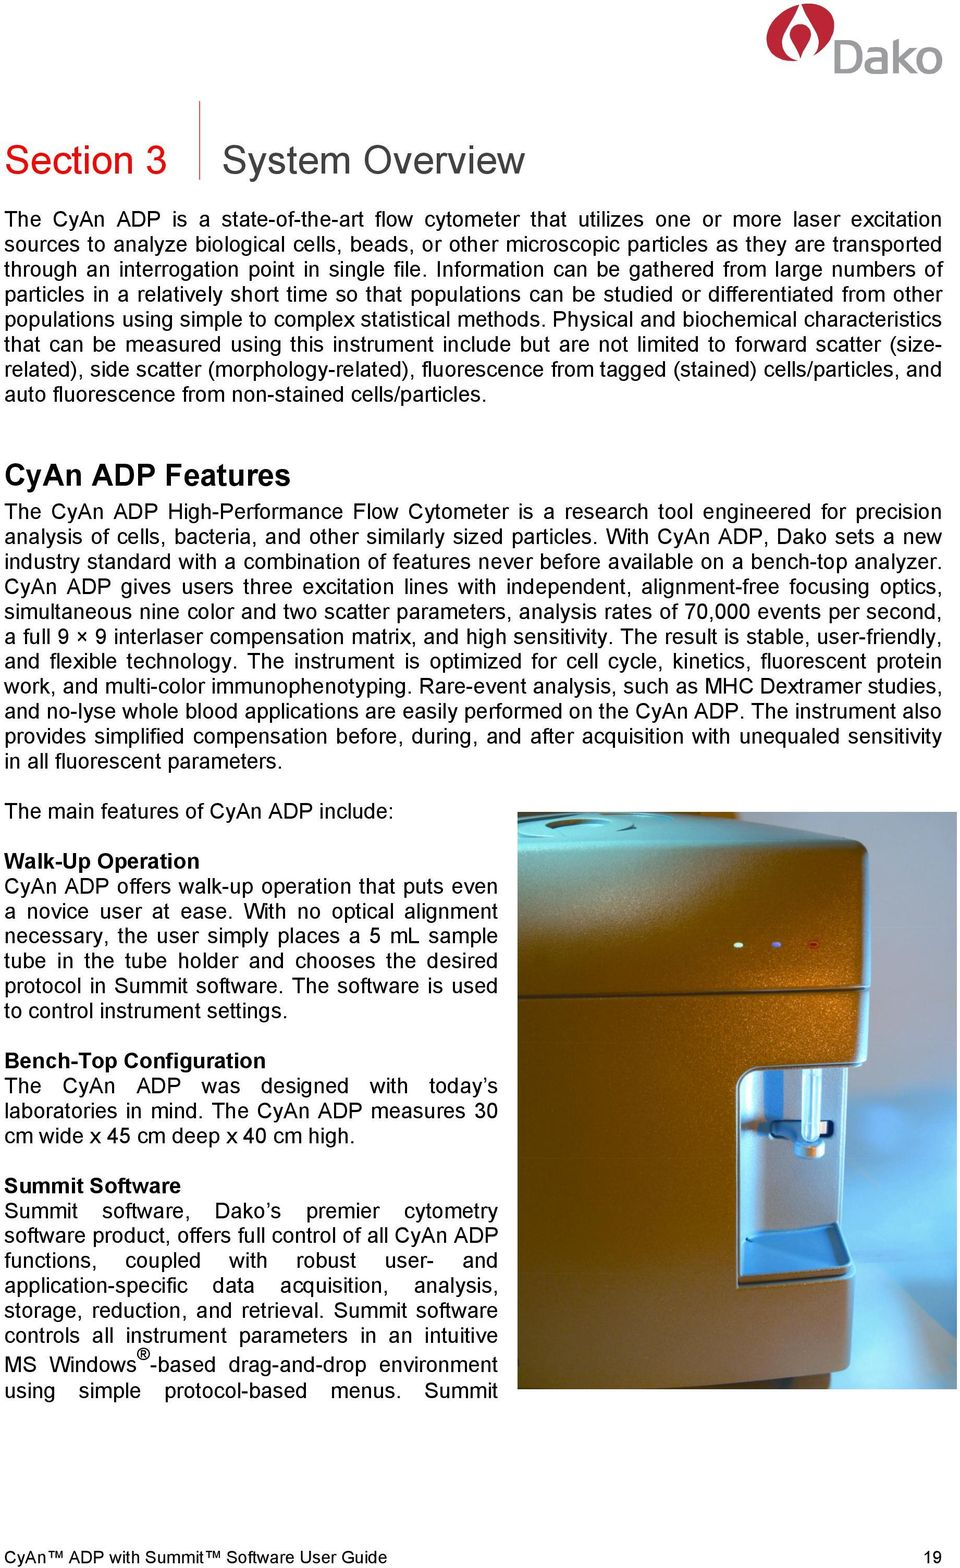 summit flow cytometry software download